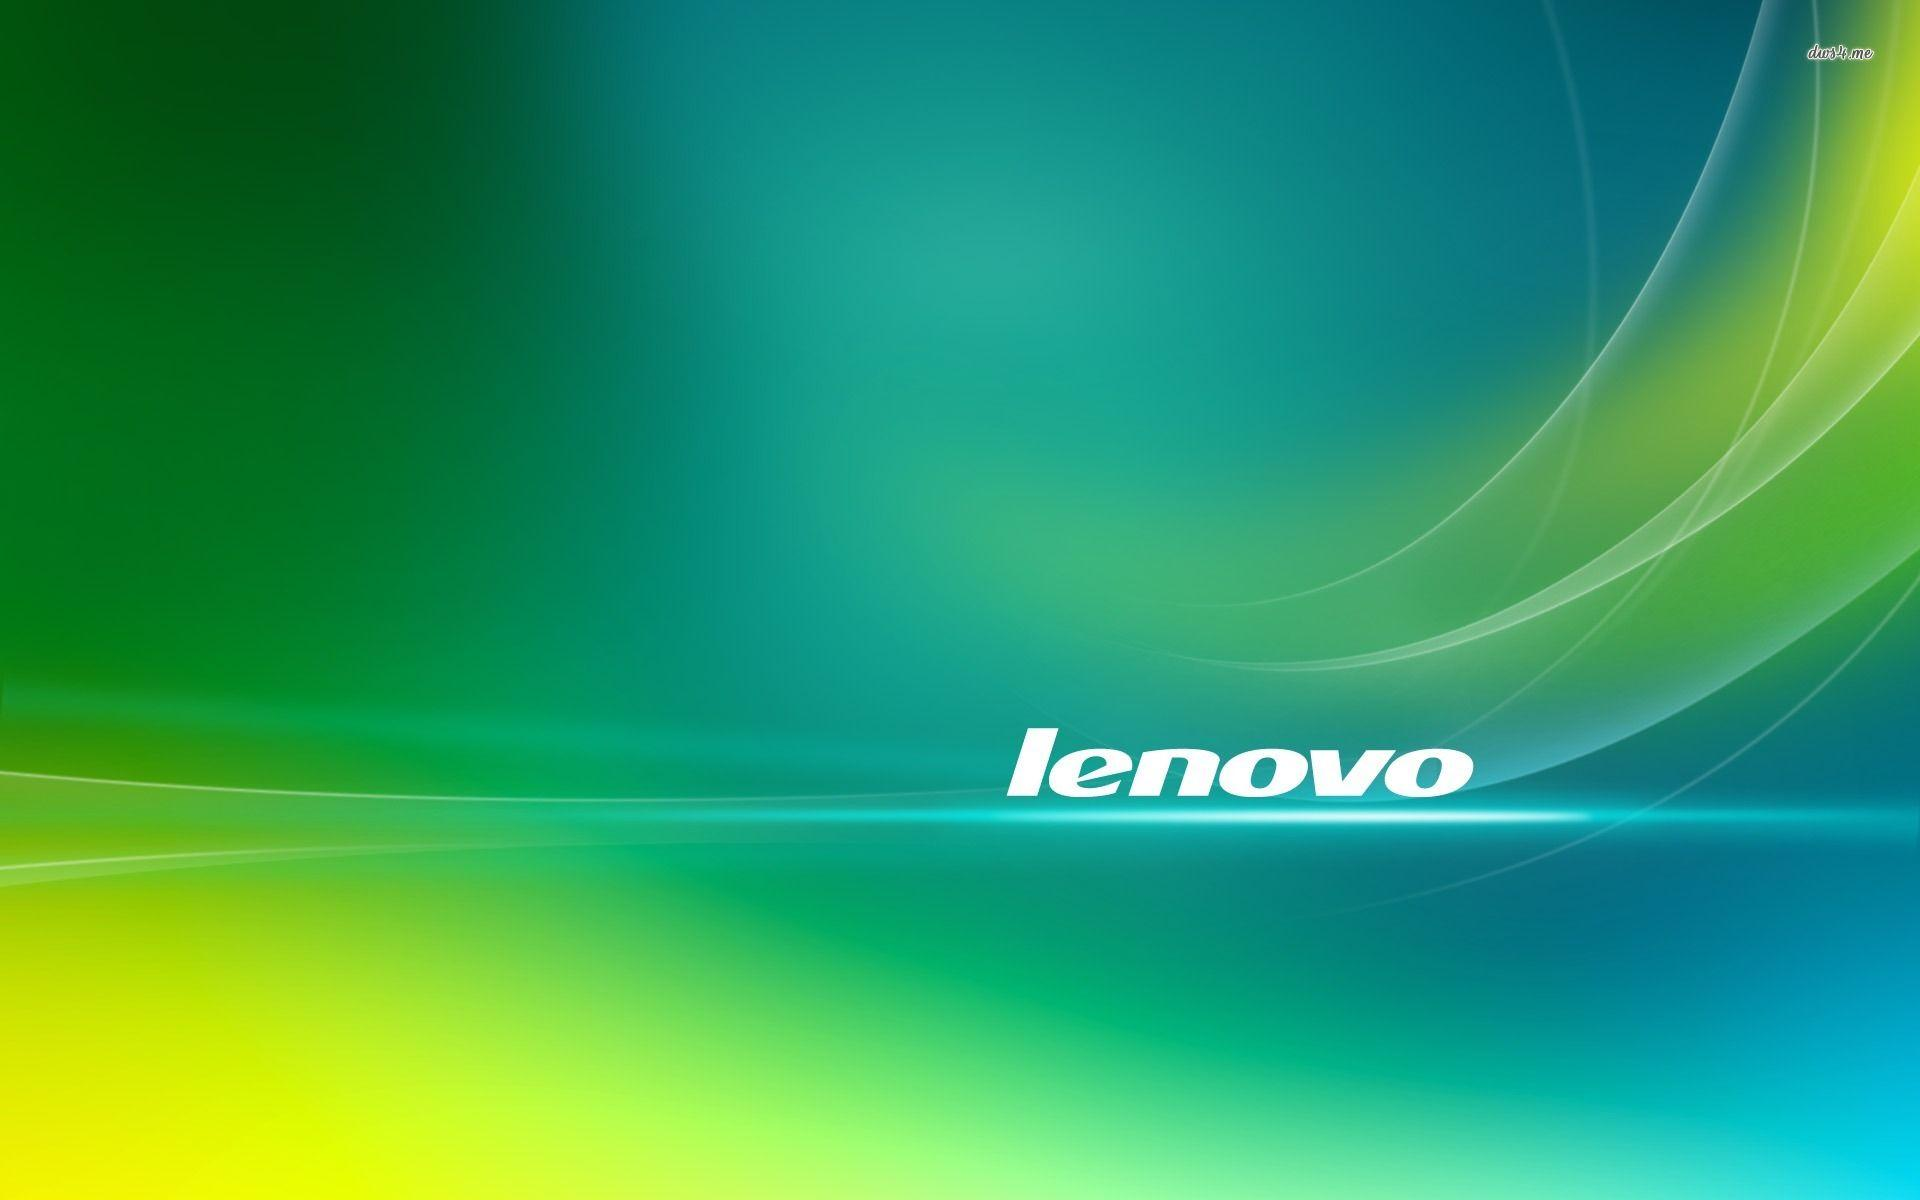 Lenovo Hd Wallpapers Top Free Lenovo Hd Backgrounds